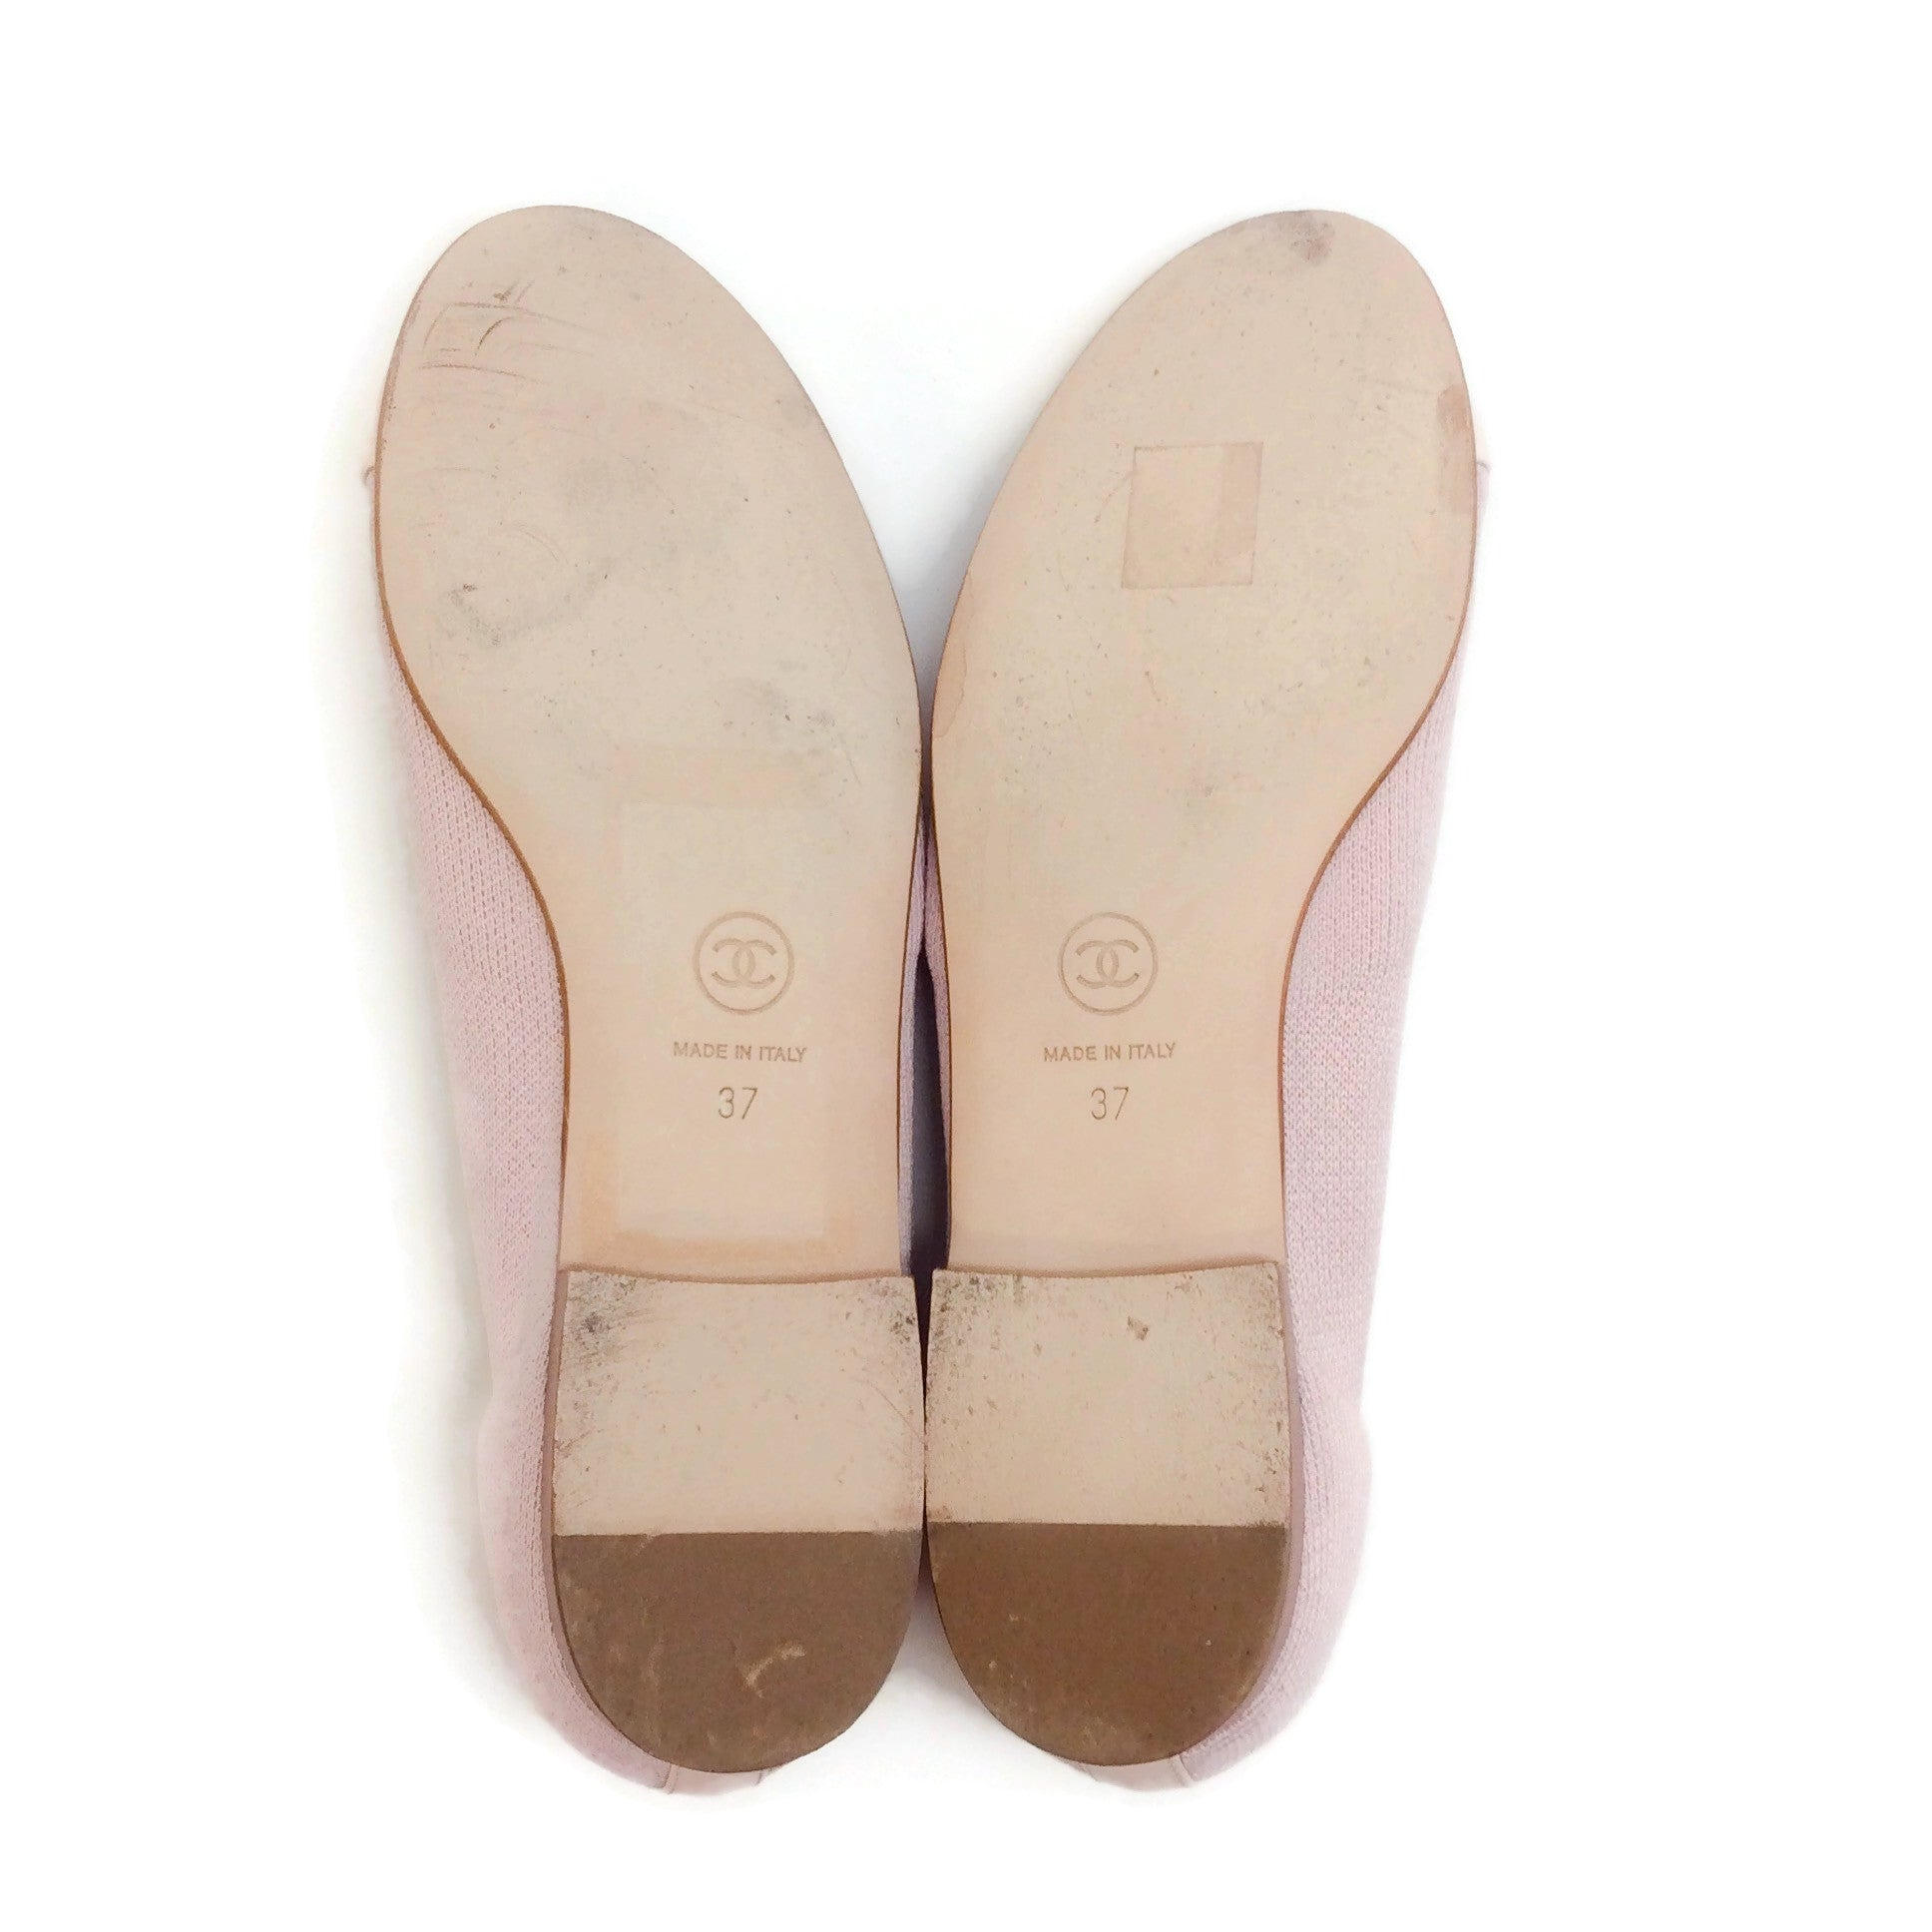 Chanel Light Pink Knit with Patent Cap Toe Ballet Flats